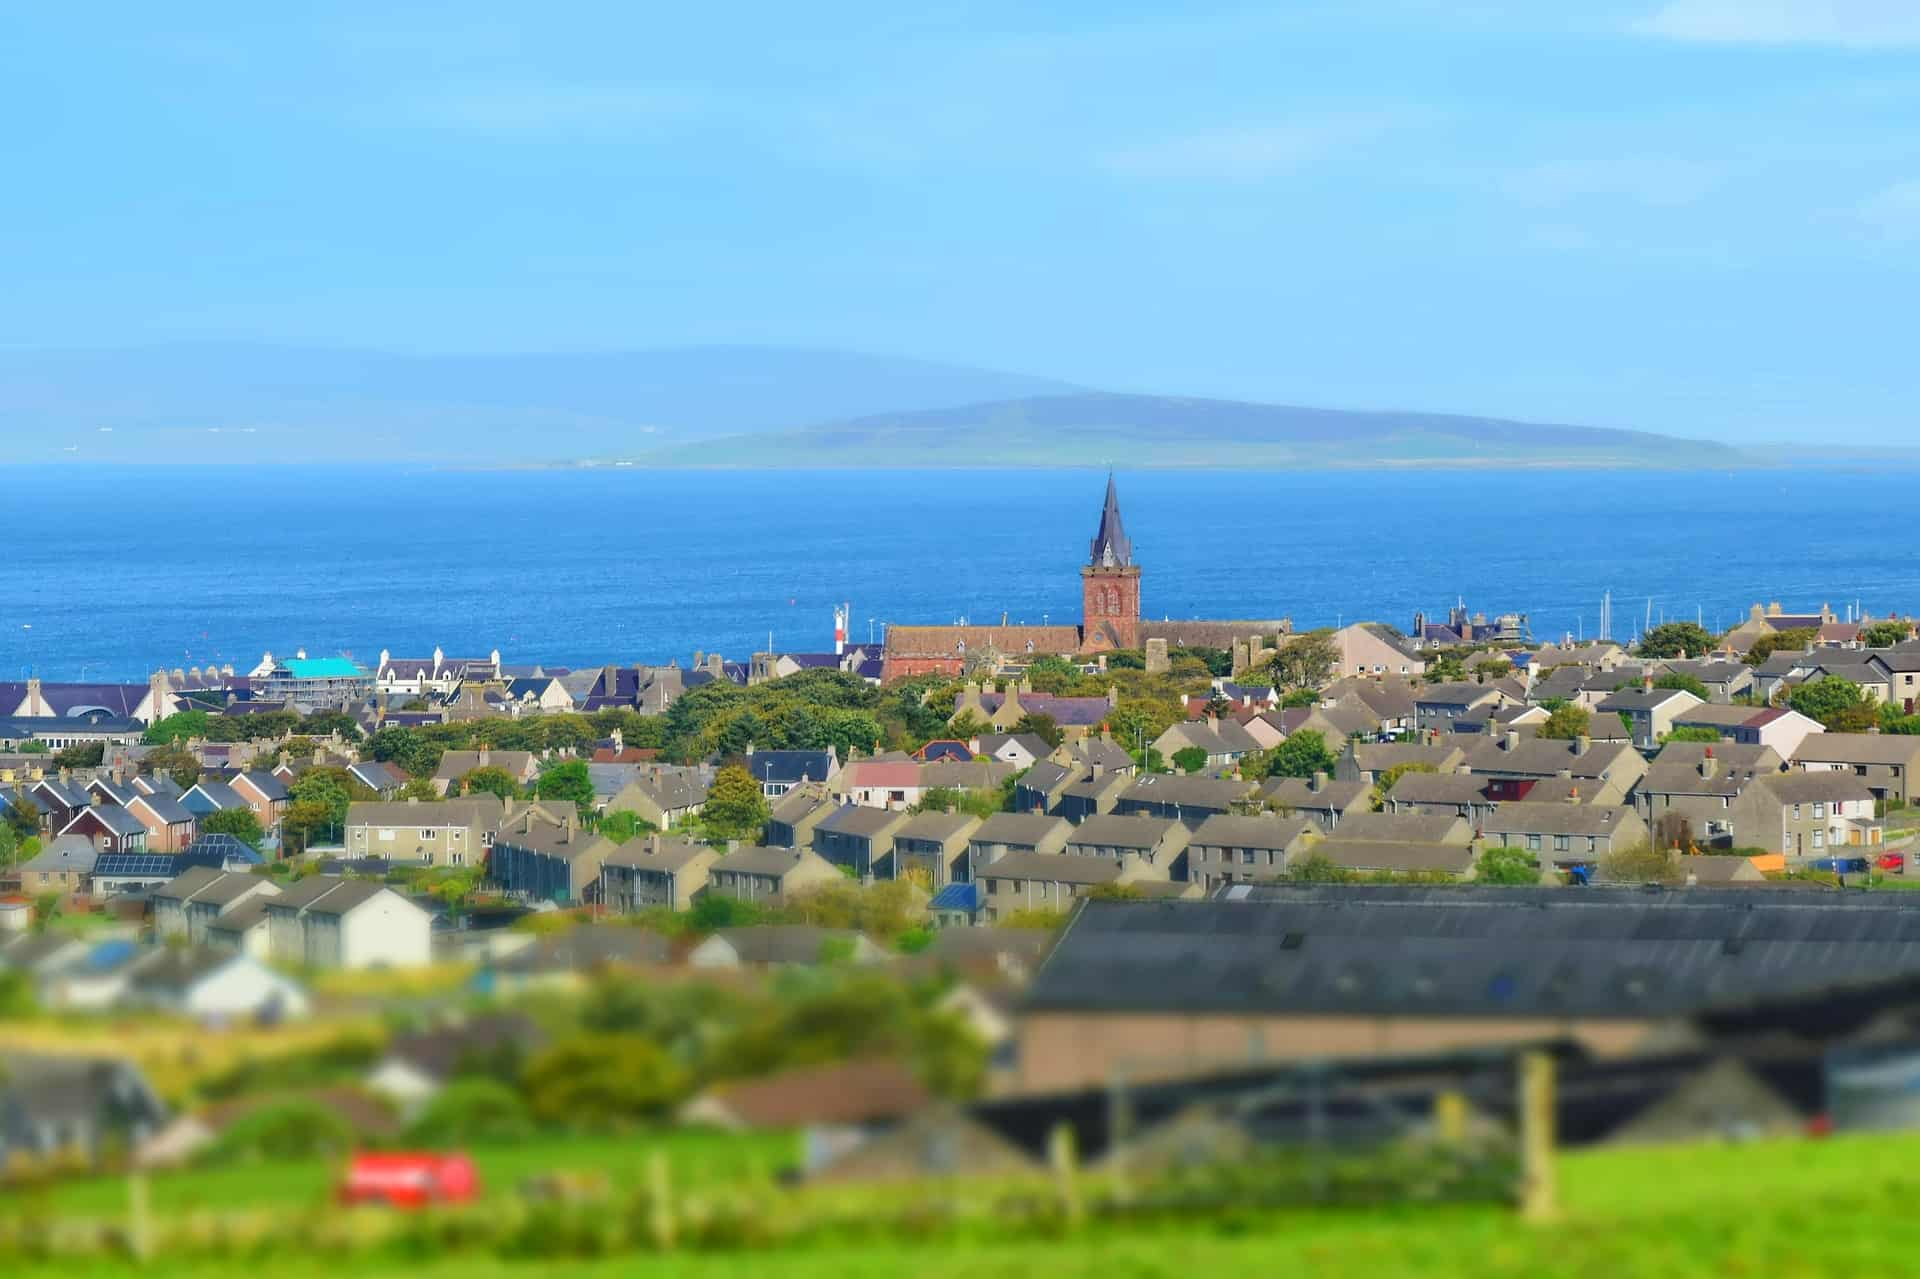 The town of Kirkwall, you can see St Magnus Cathedral in the distance